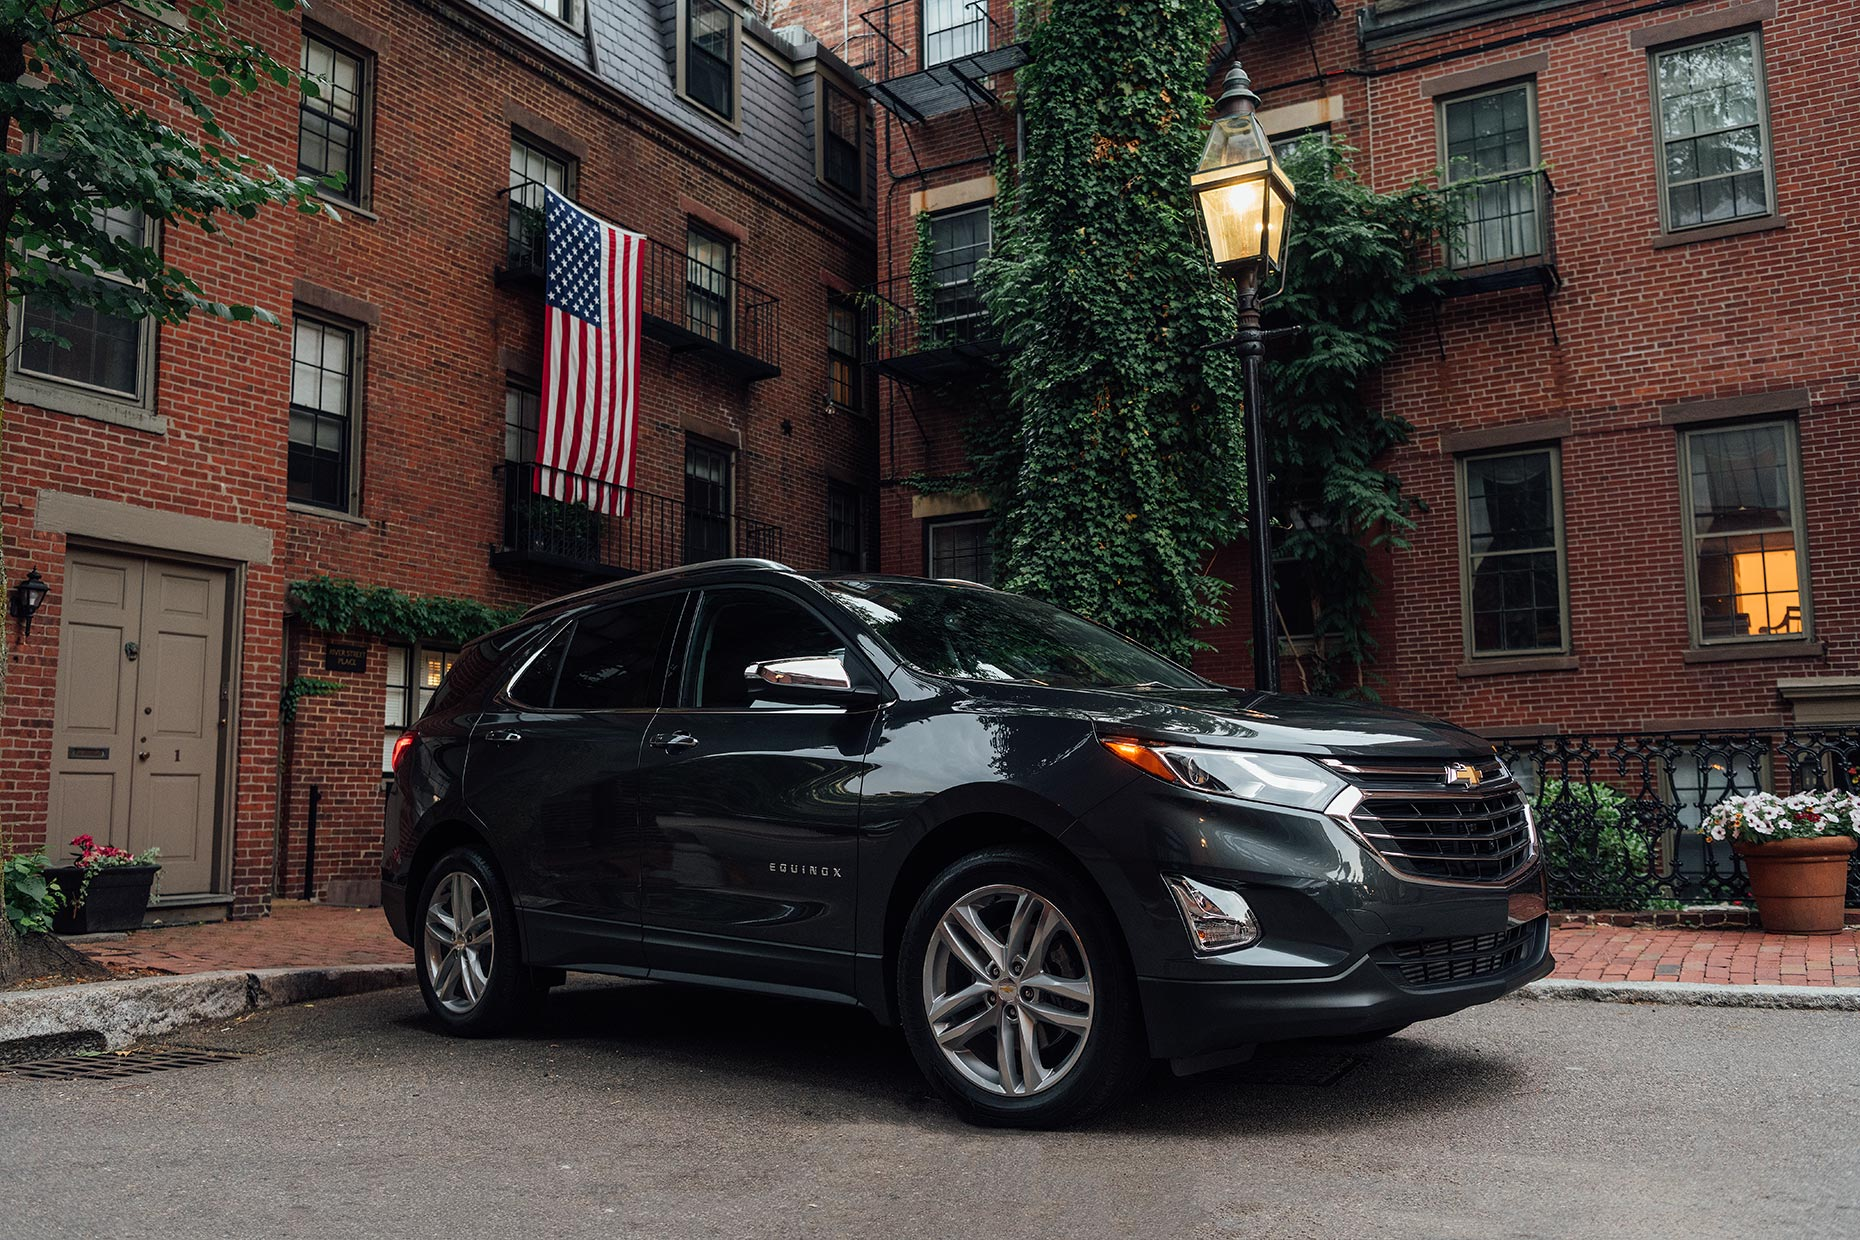 Straley_Chevy_Equinox_01